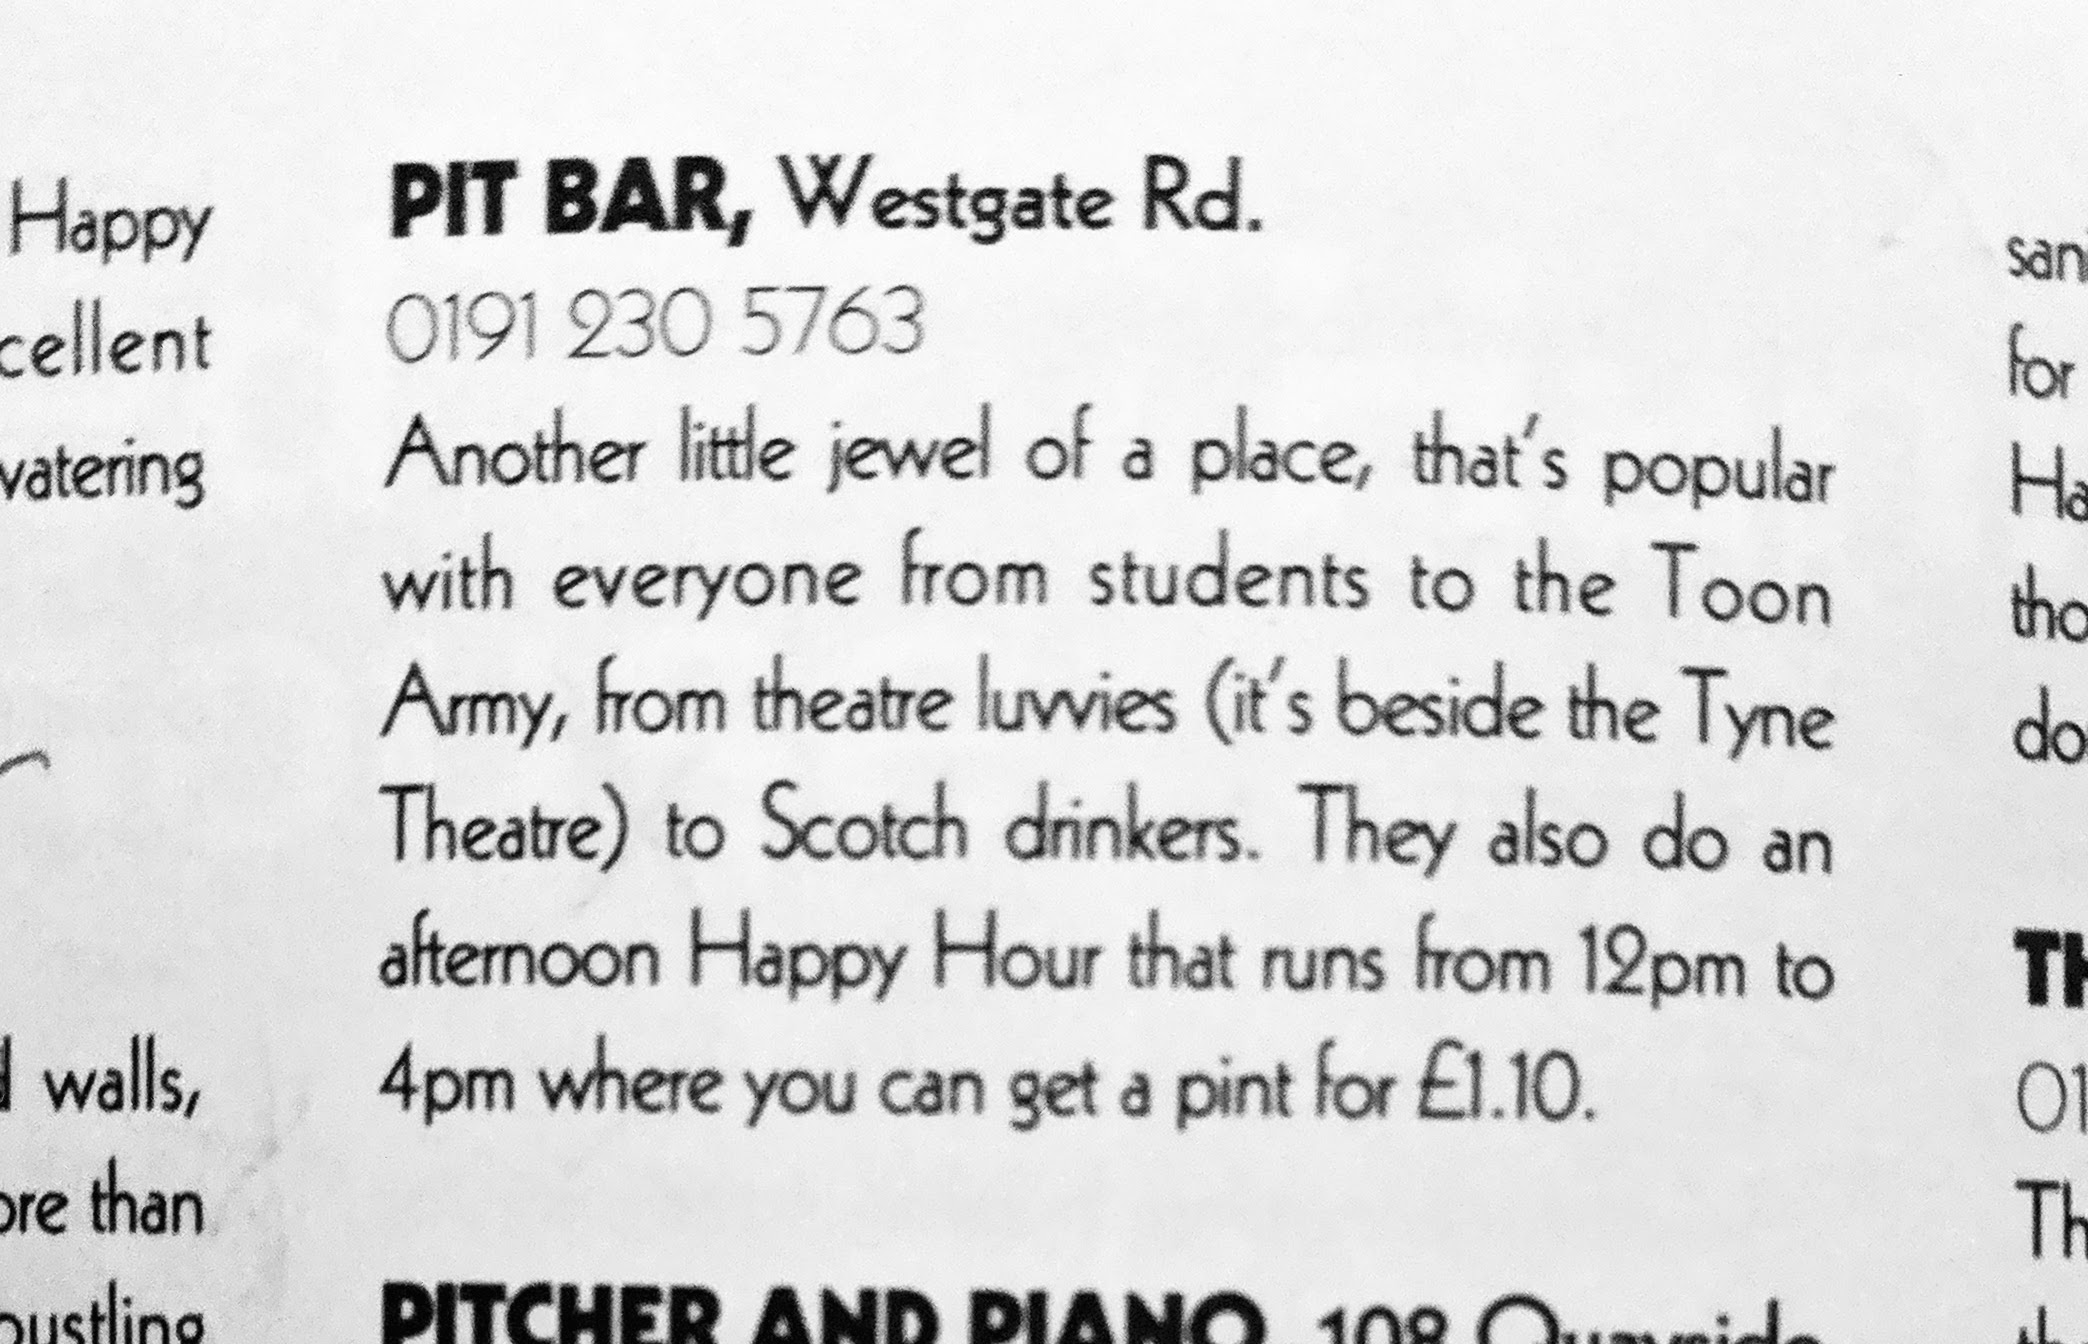 review of the the pit bar